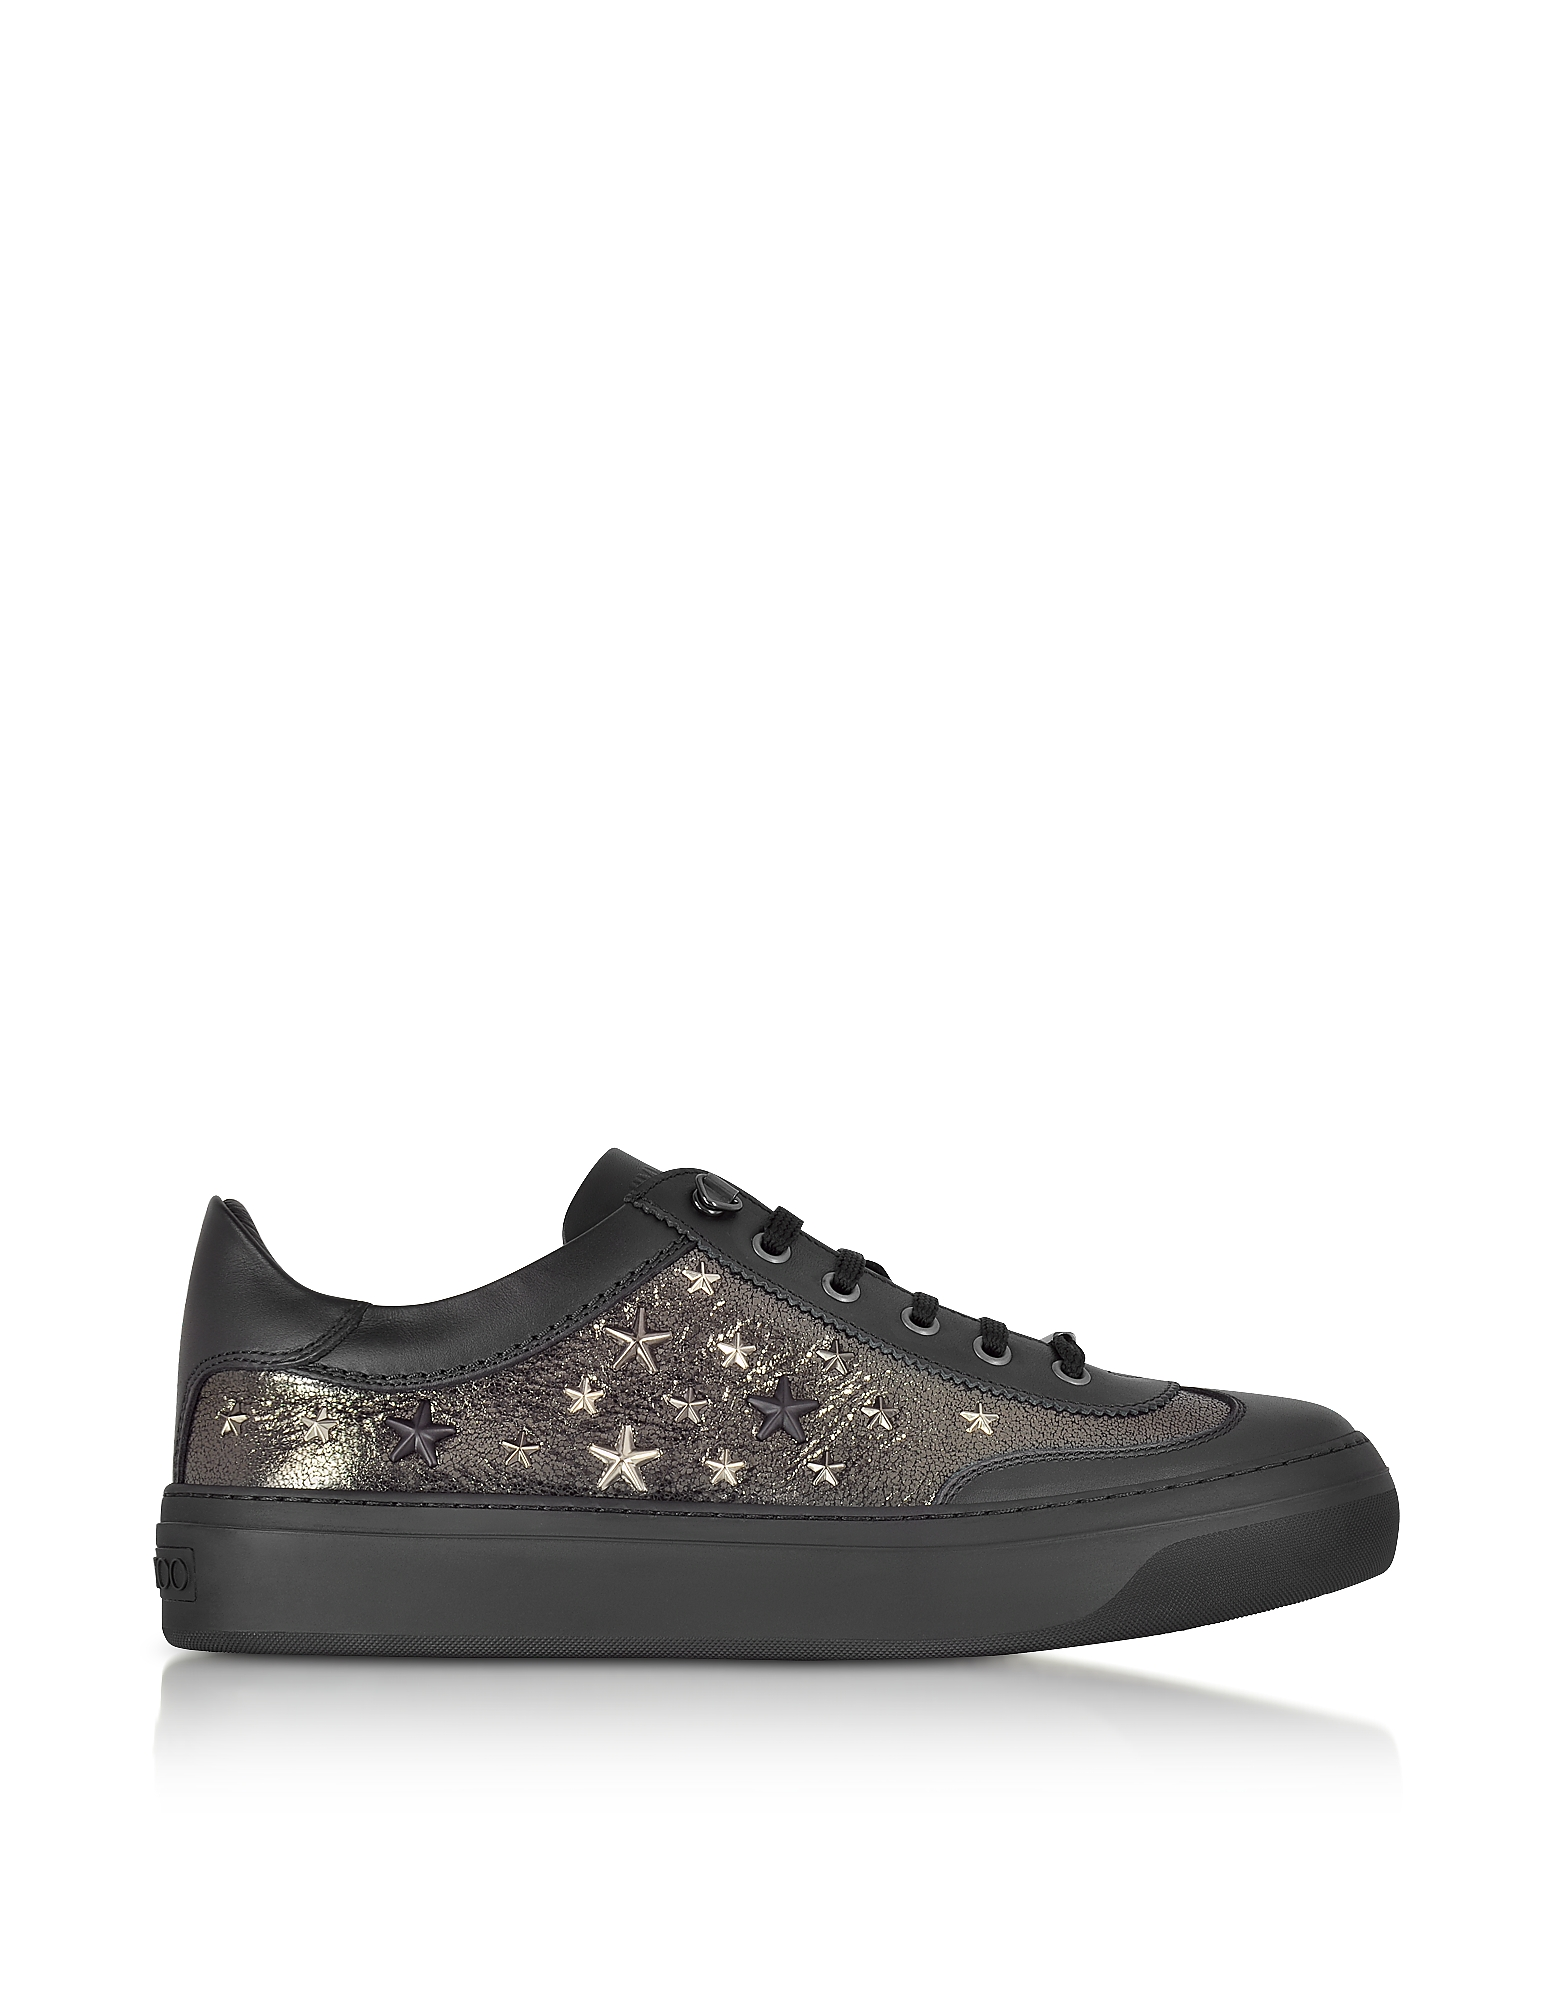 Jimmy Choo Shoes, Ace EOR Metallic Gunmetal Leather Low Top Sneakers w/Studded Stars